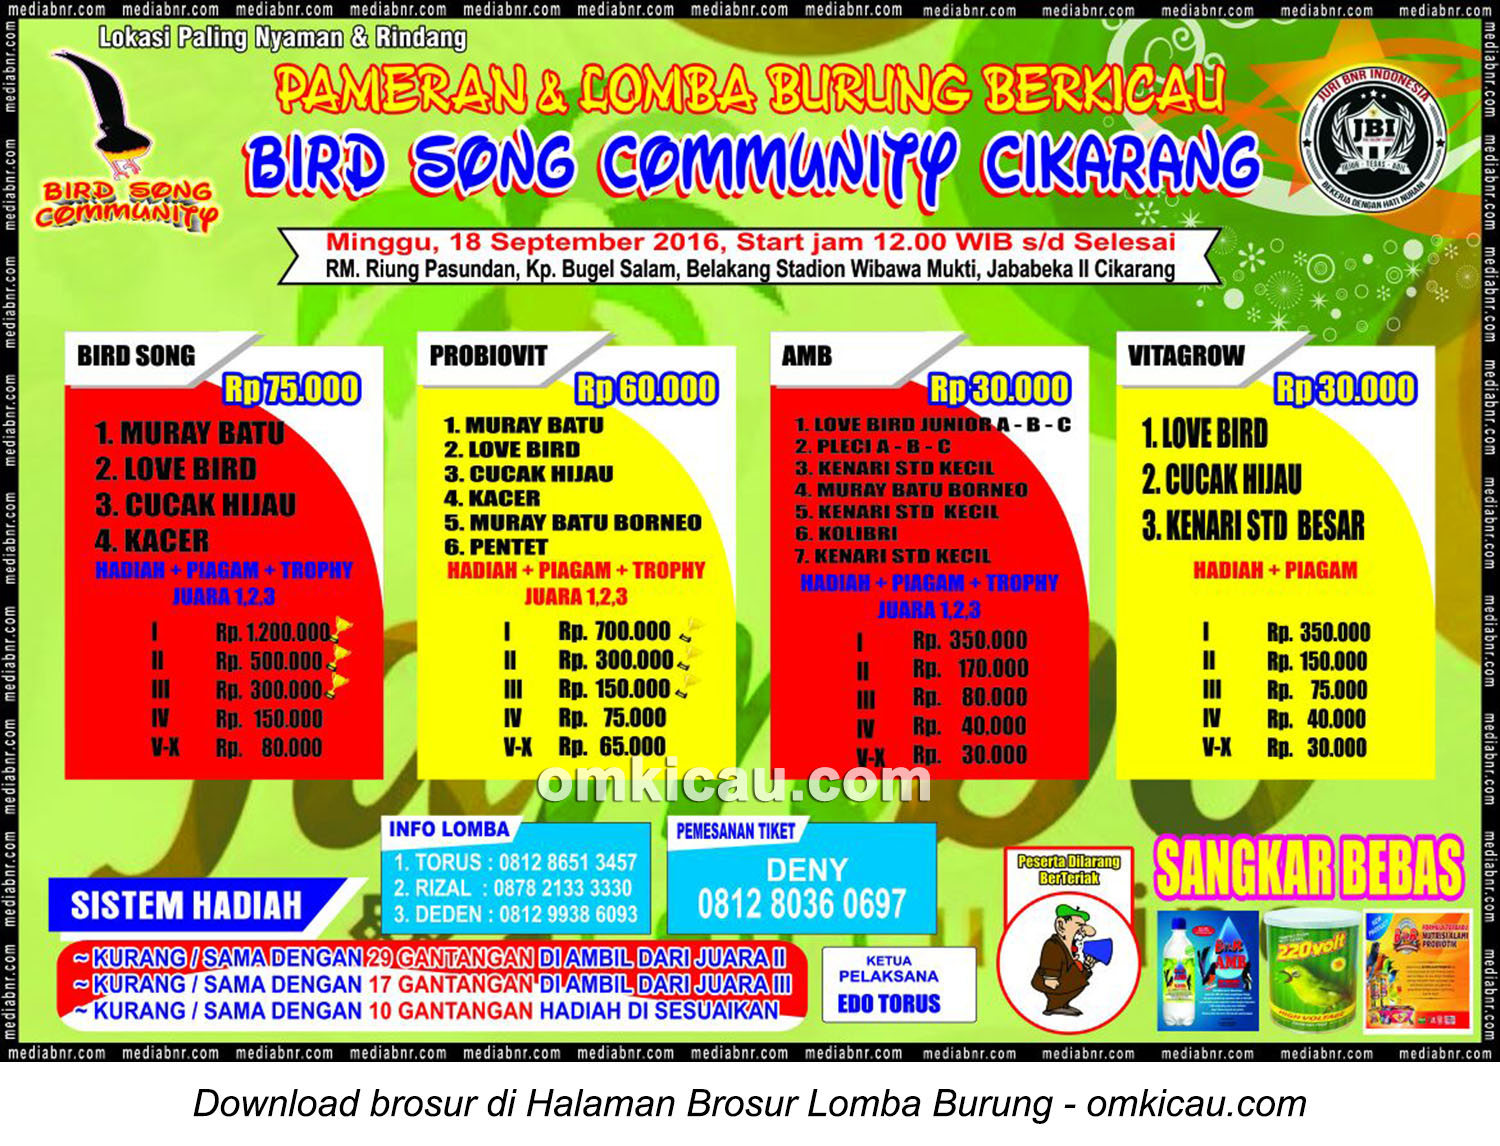 Brosur Lomba Burung Berkicau Bird Song Community, Cikarang, 18 September 2016